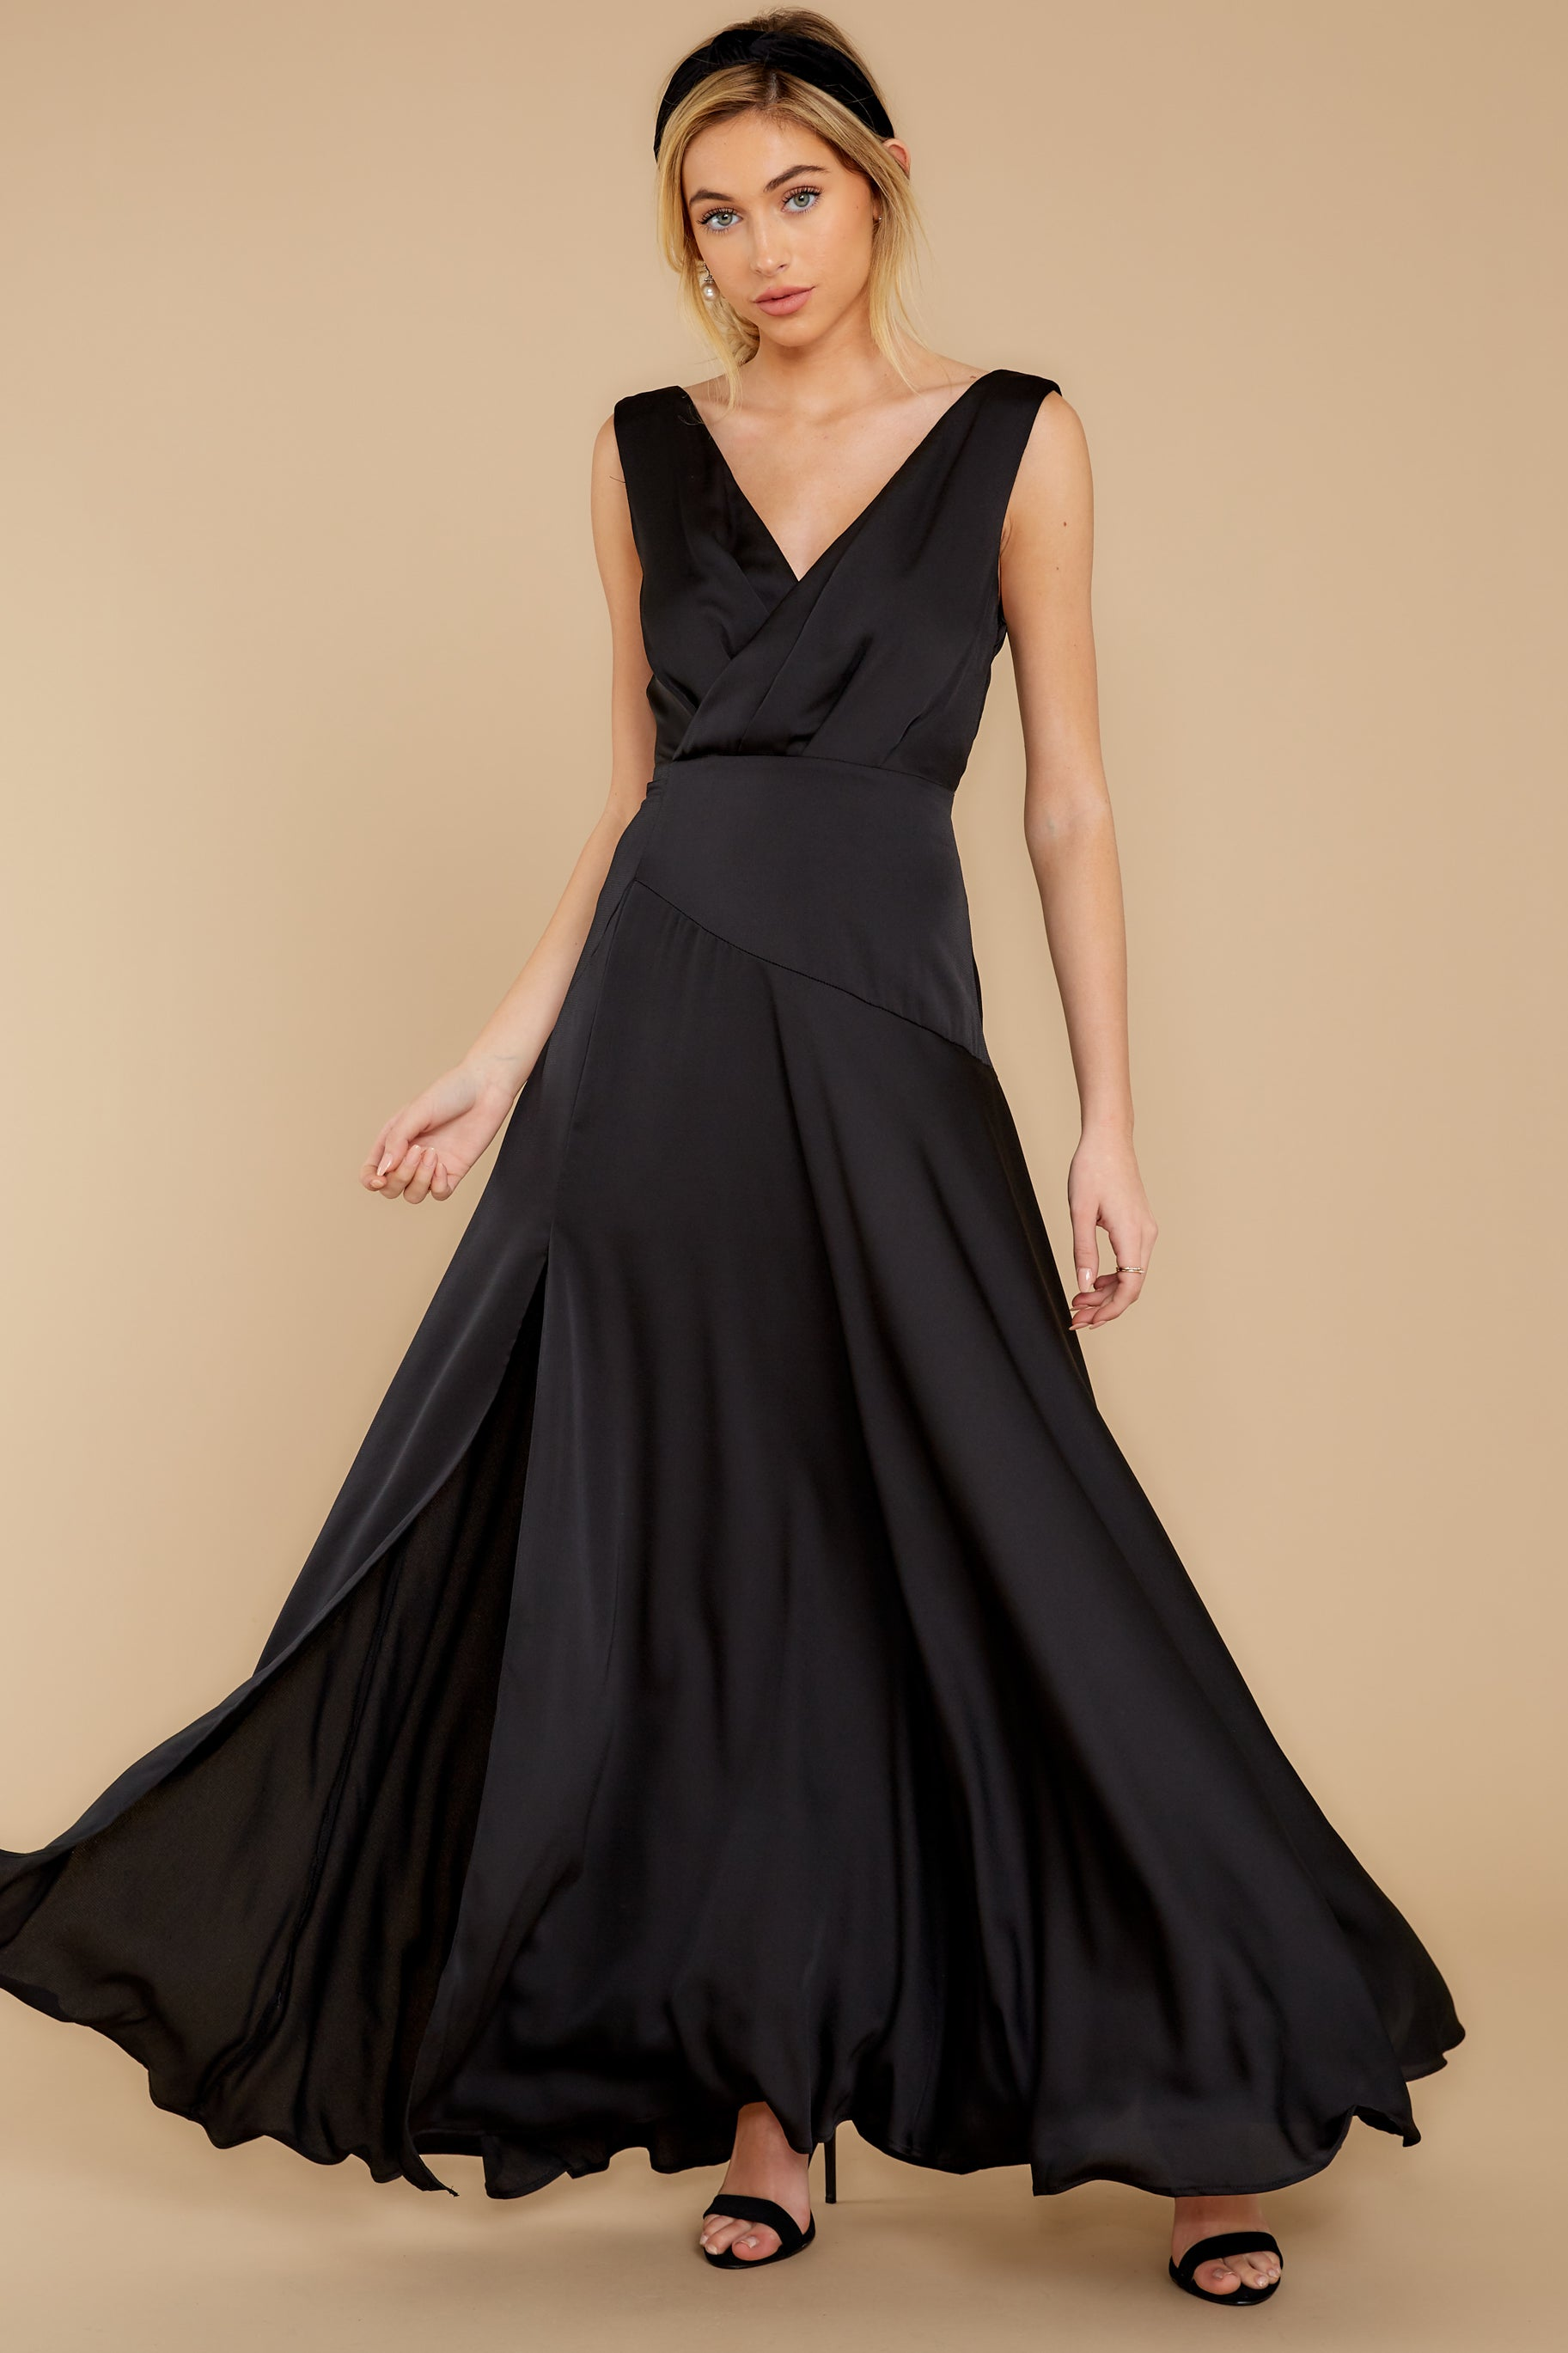 1930s Evening Dresses | Old Hollywood Silver Screen Dresses Sweeping Entrance Black Maxi Dress $56.00 AT vintagedancer.com